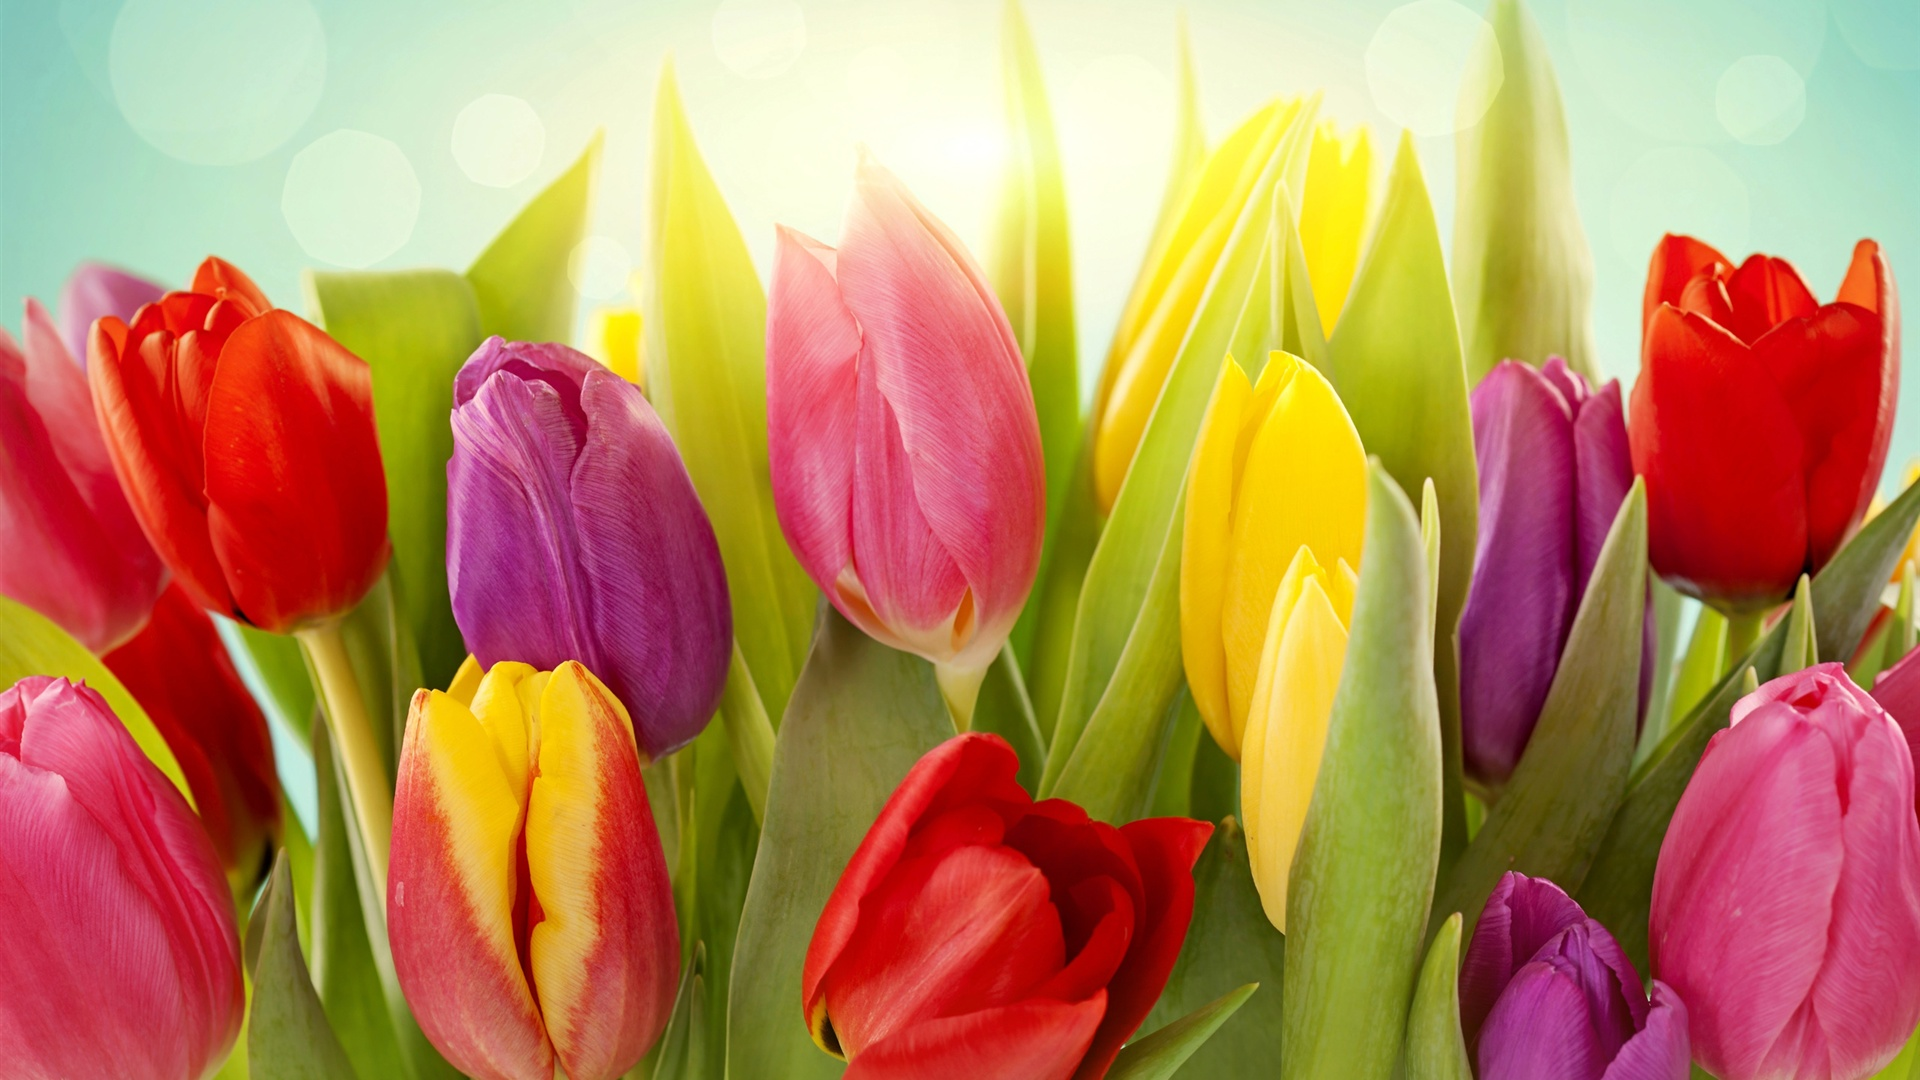 Best Car Wallpaper Download Wallpaper Different Colors Of Tulip Flowers 2560x1600 Hd